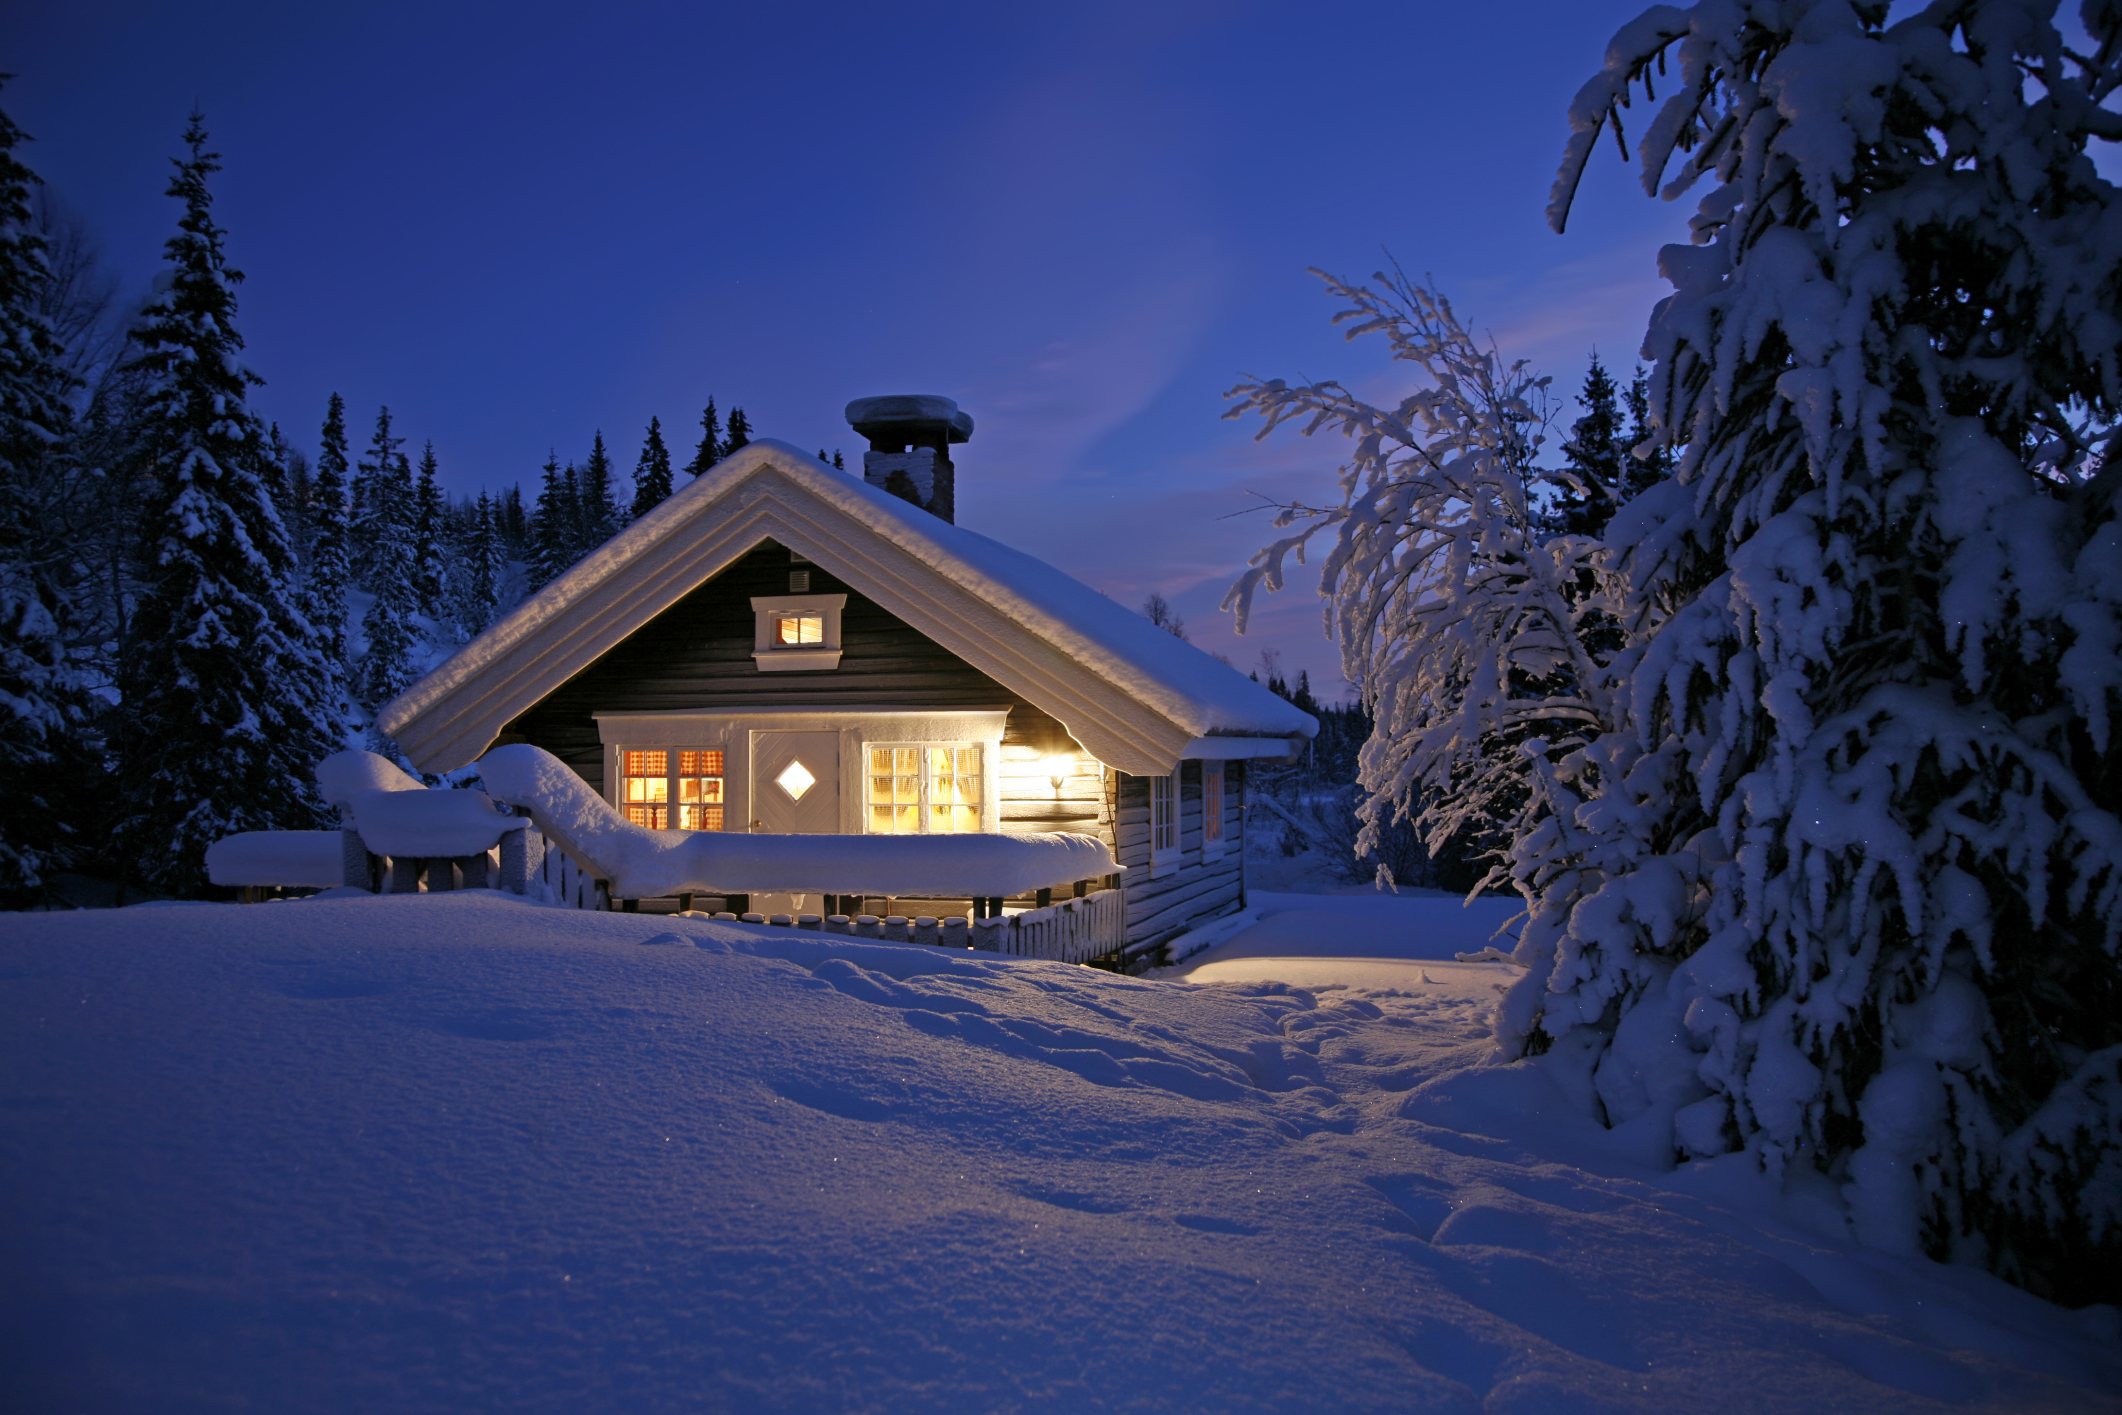 Snow Safety for the Home